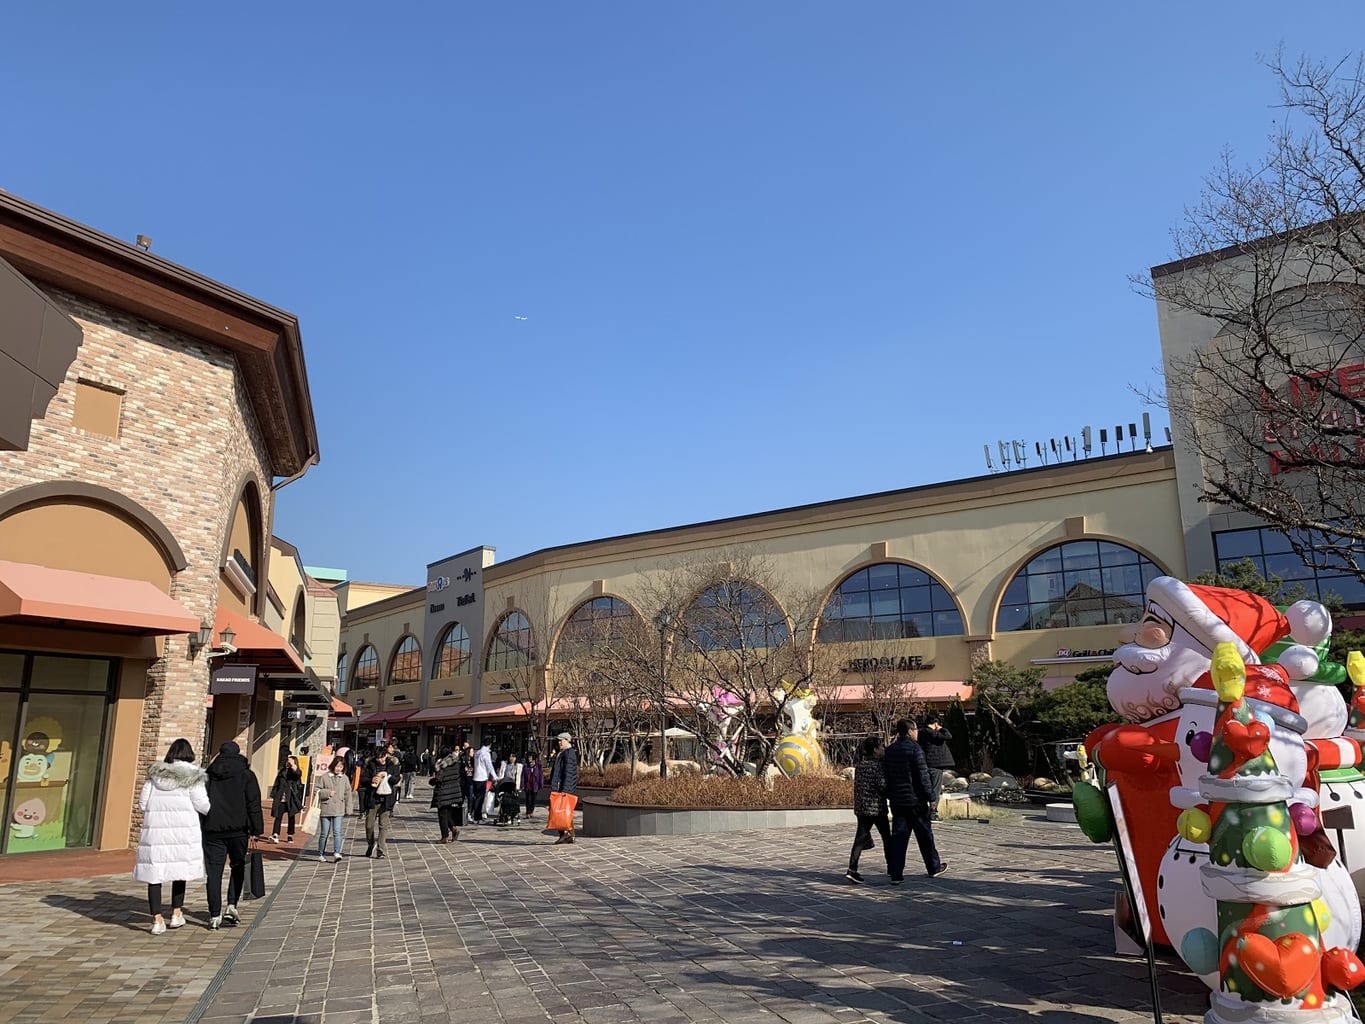 Lotte Premium Outlet in Giheung, Gyeonggi Province